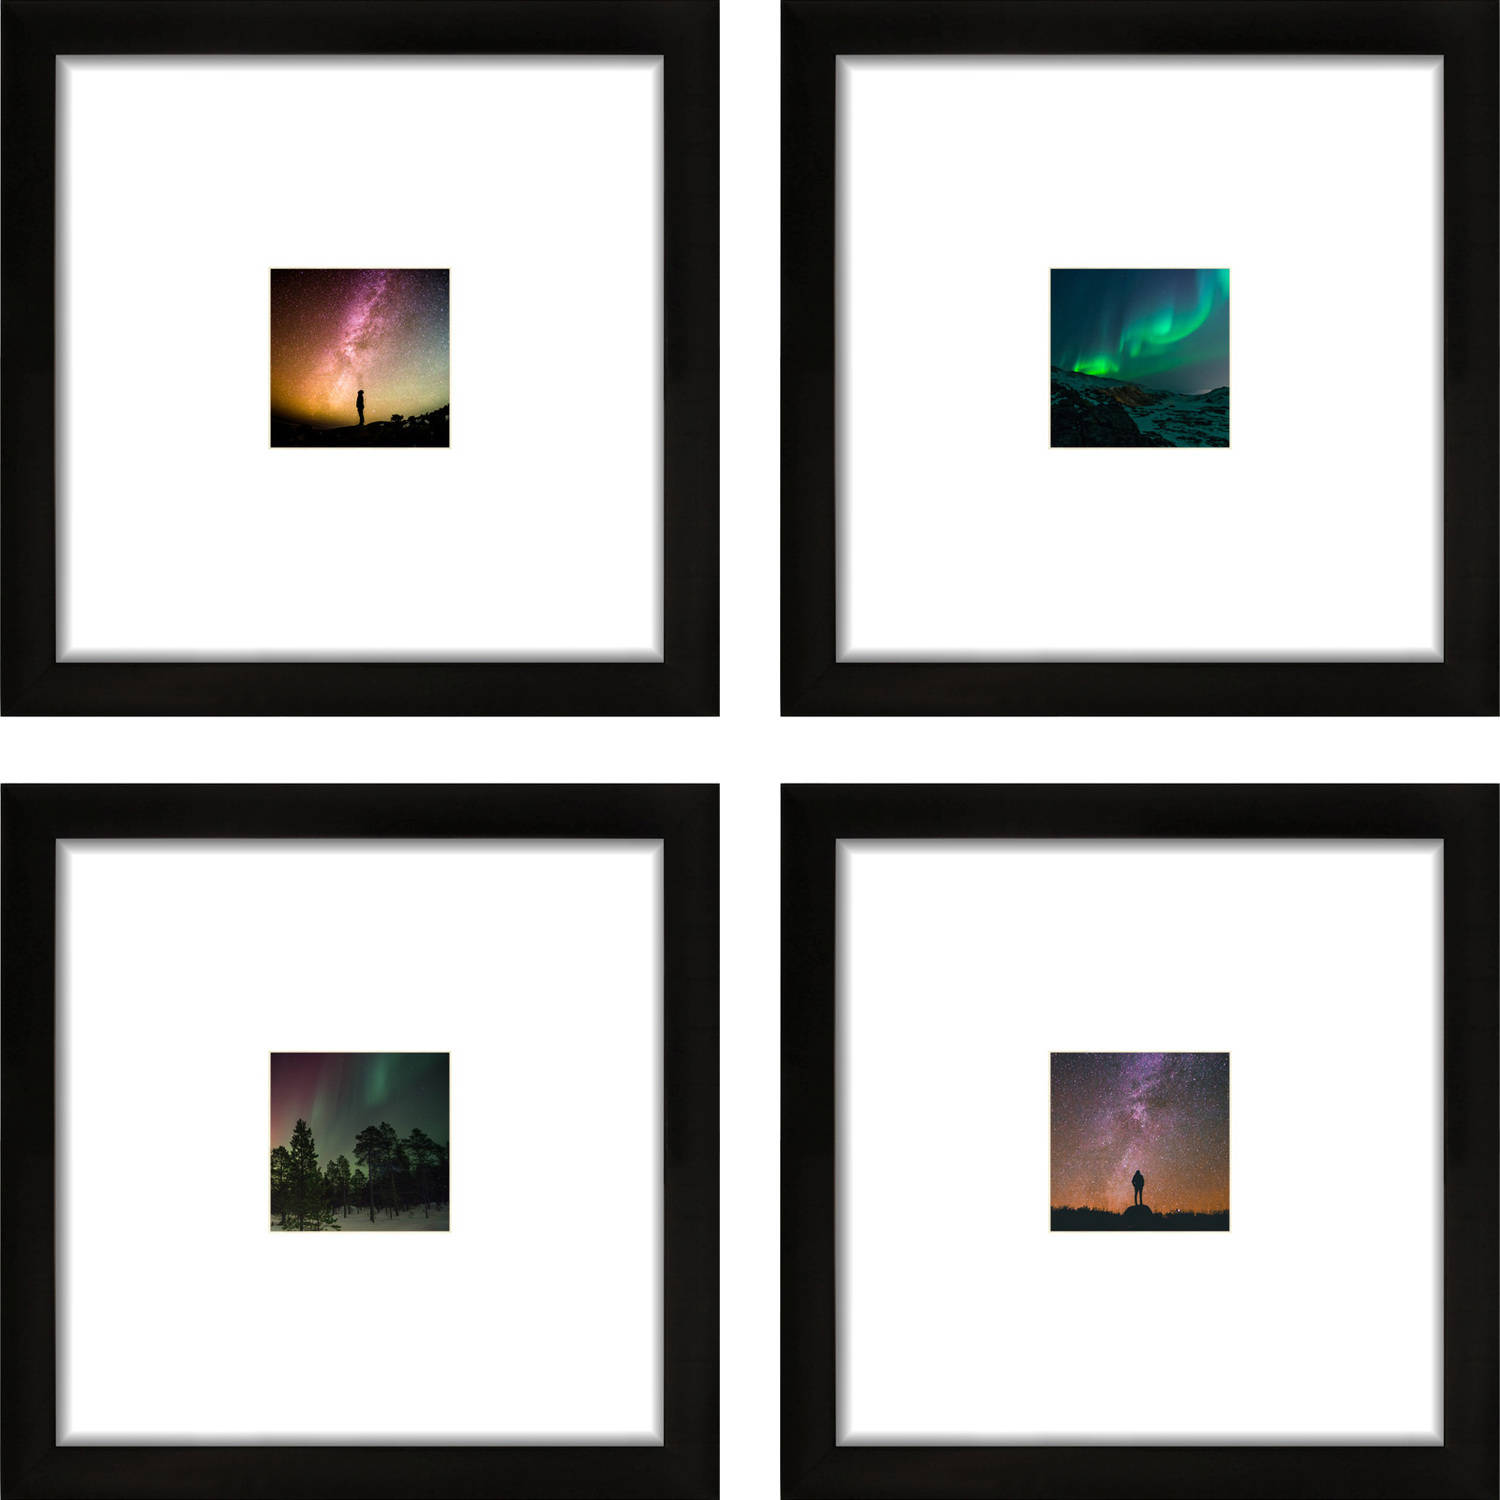 Craig Frames 12x12 Black Picture Frame, Smartphone Collection, Single White Mat with 4x4 Square Opening, Set of 4